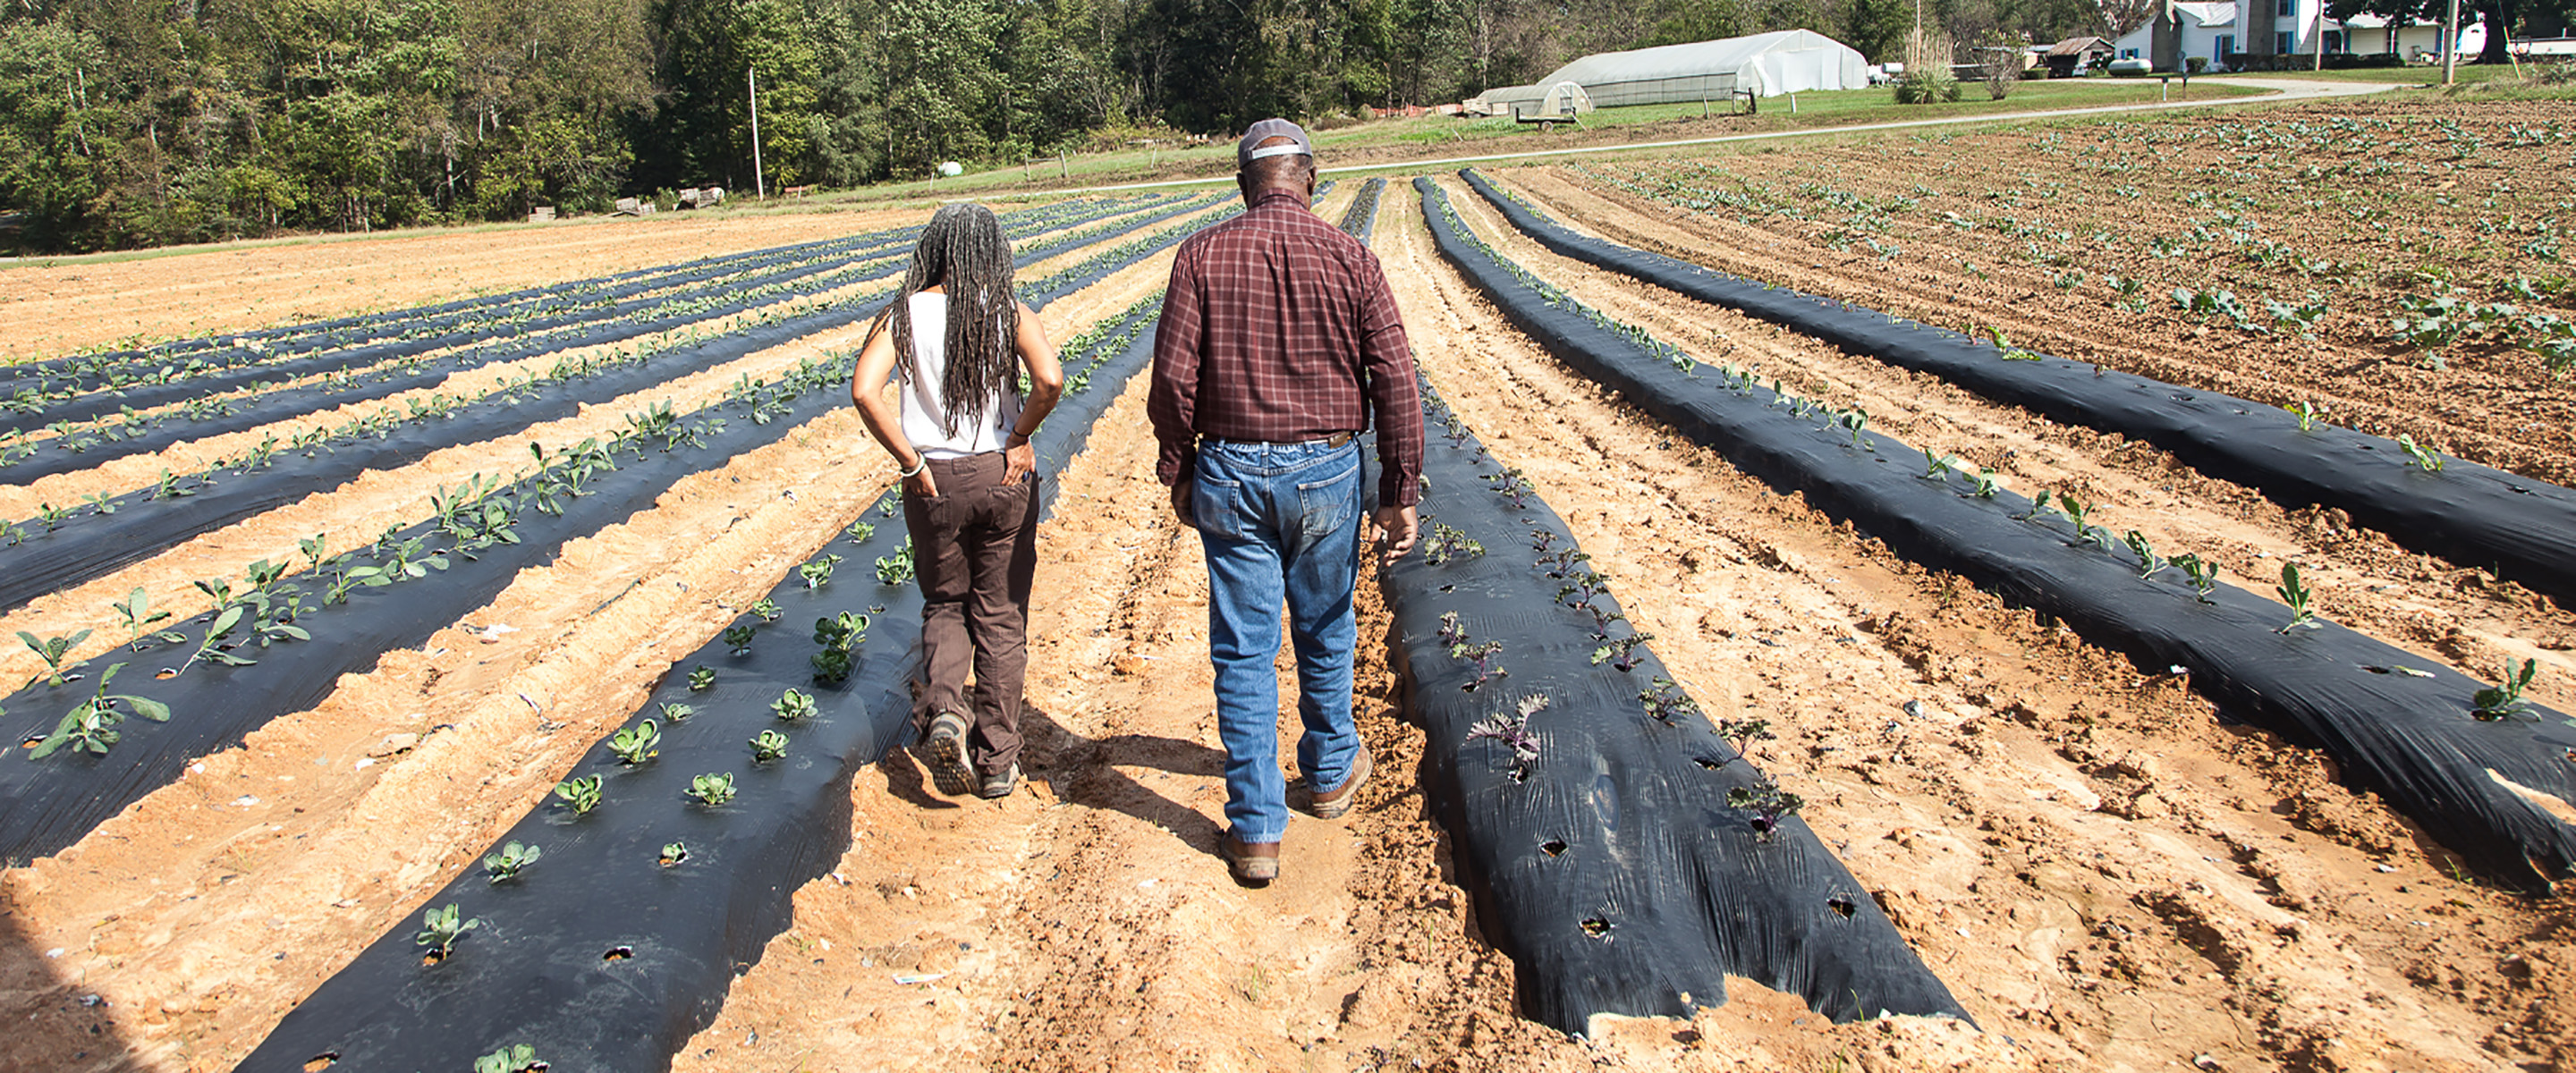 Pursuing Social Justice on the Farm with Savi Horne and the Land Loss Prevention Project